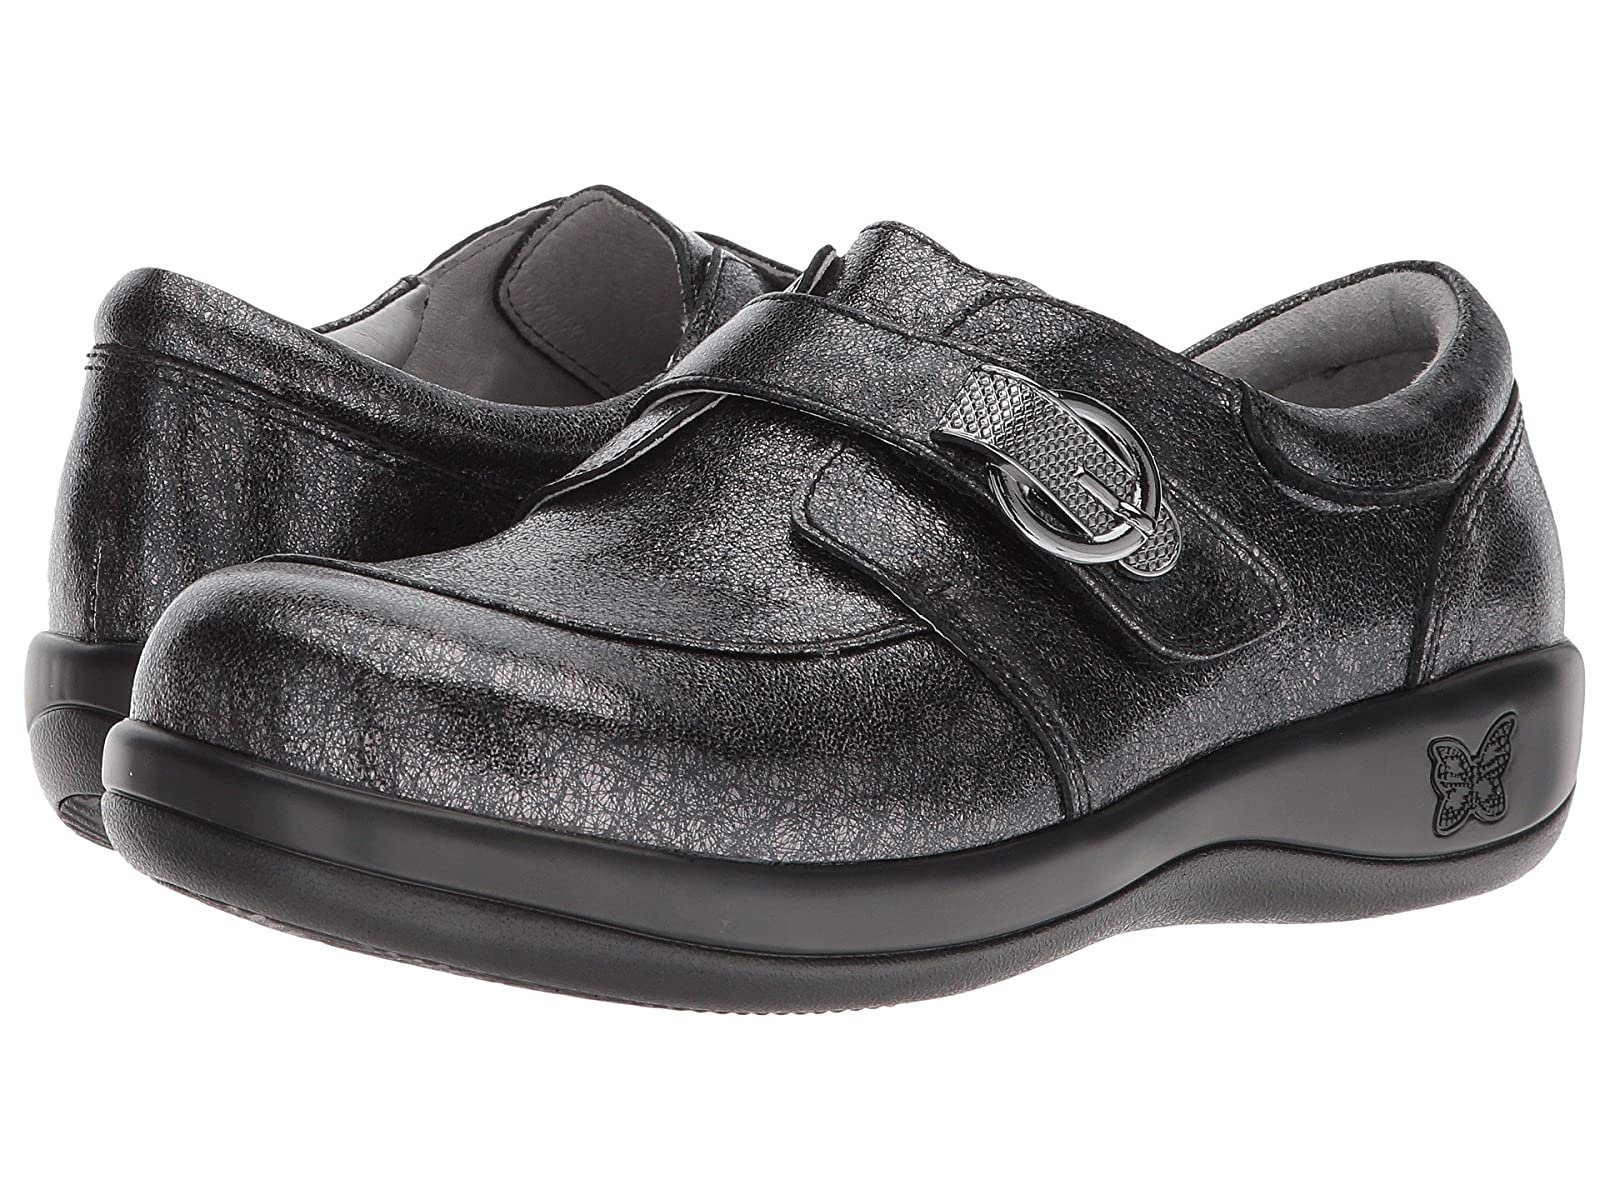 Alegria KhloeEconomical and quality shoes